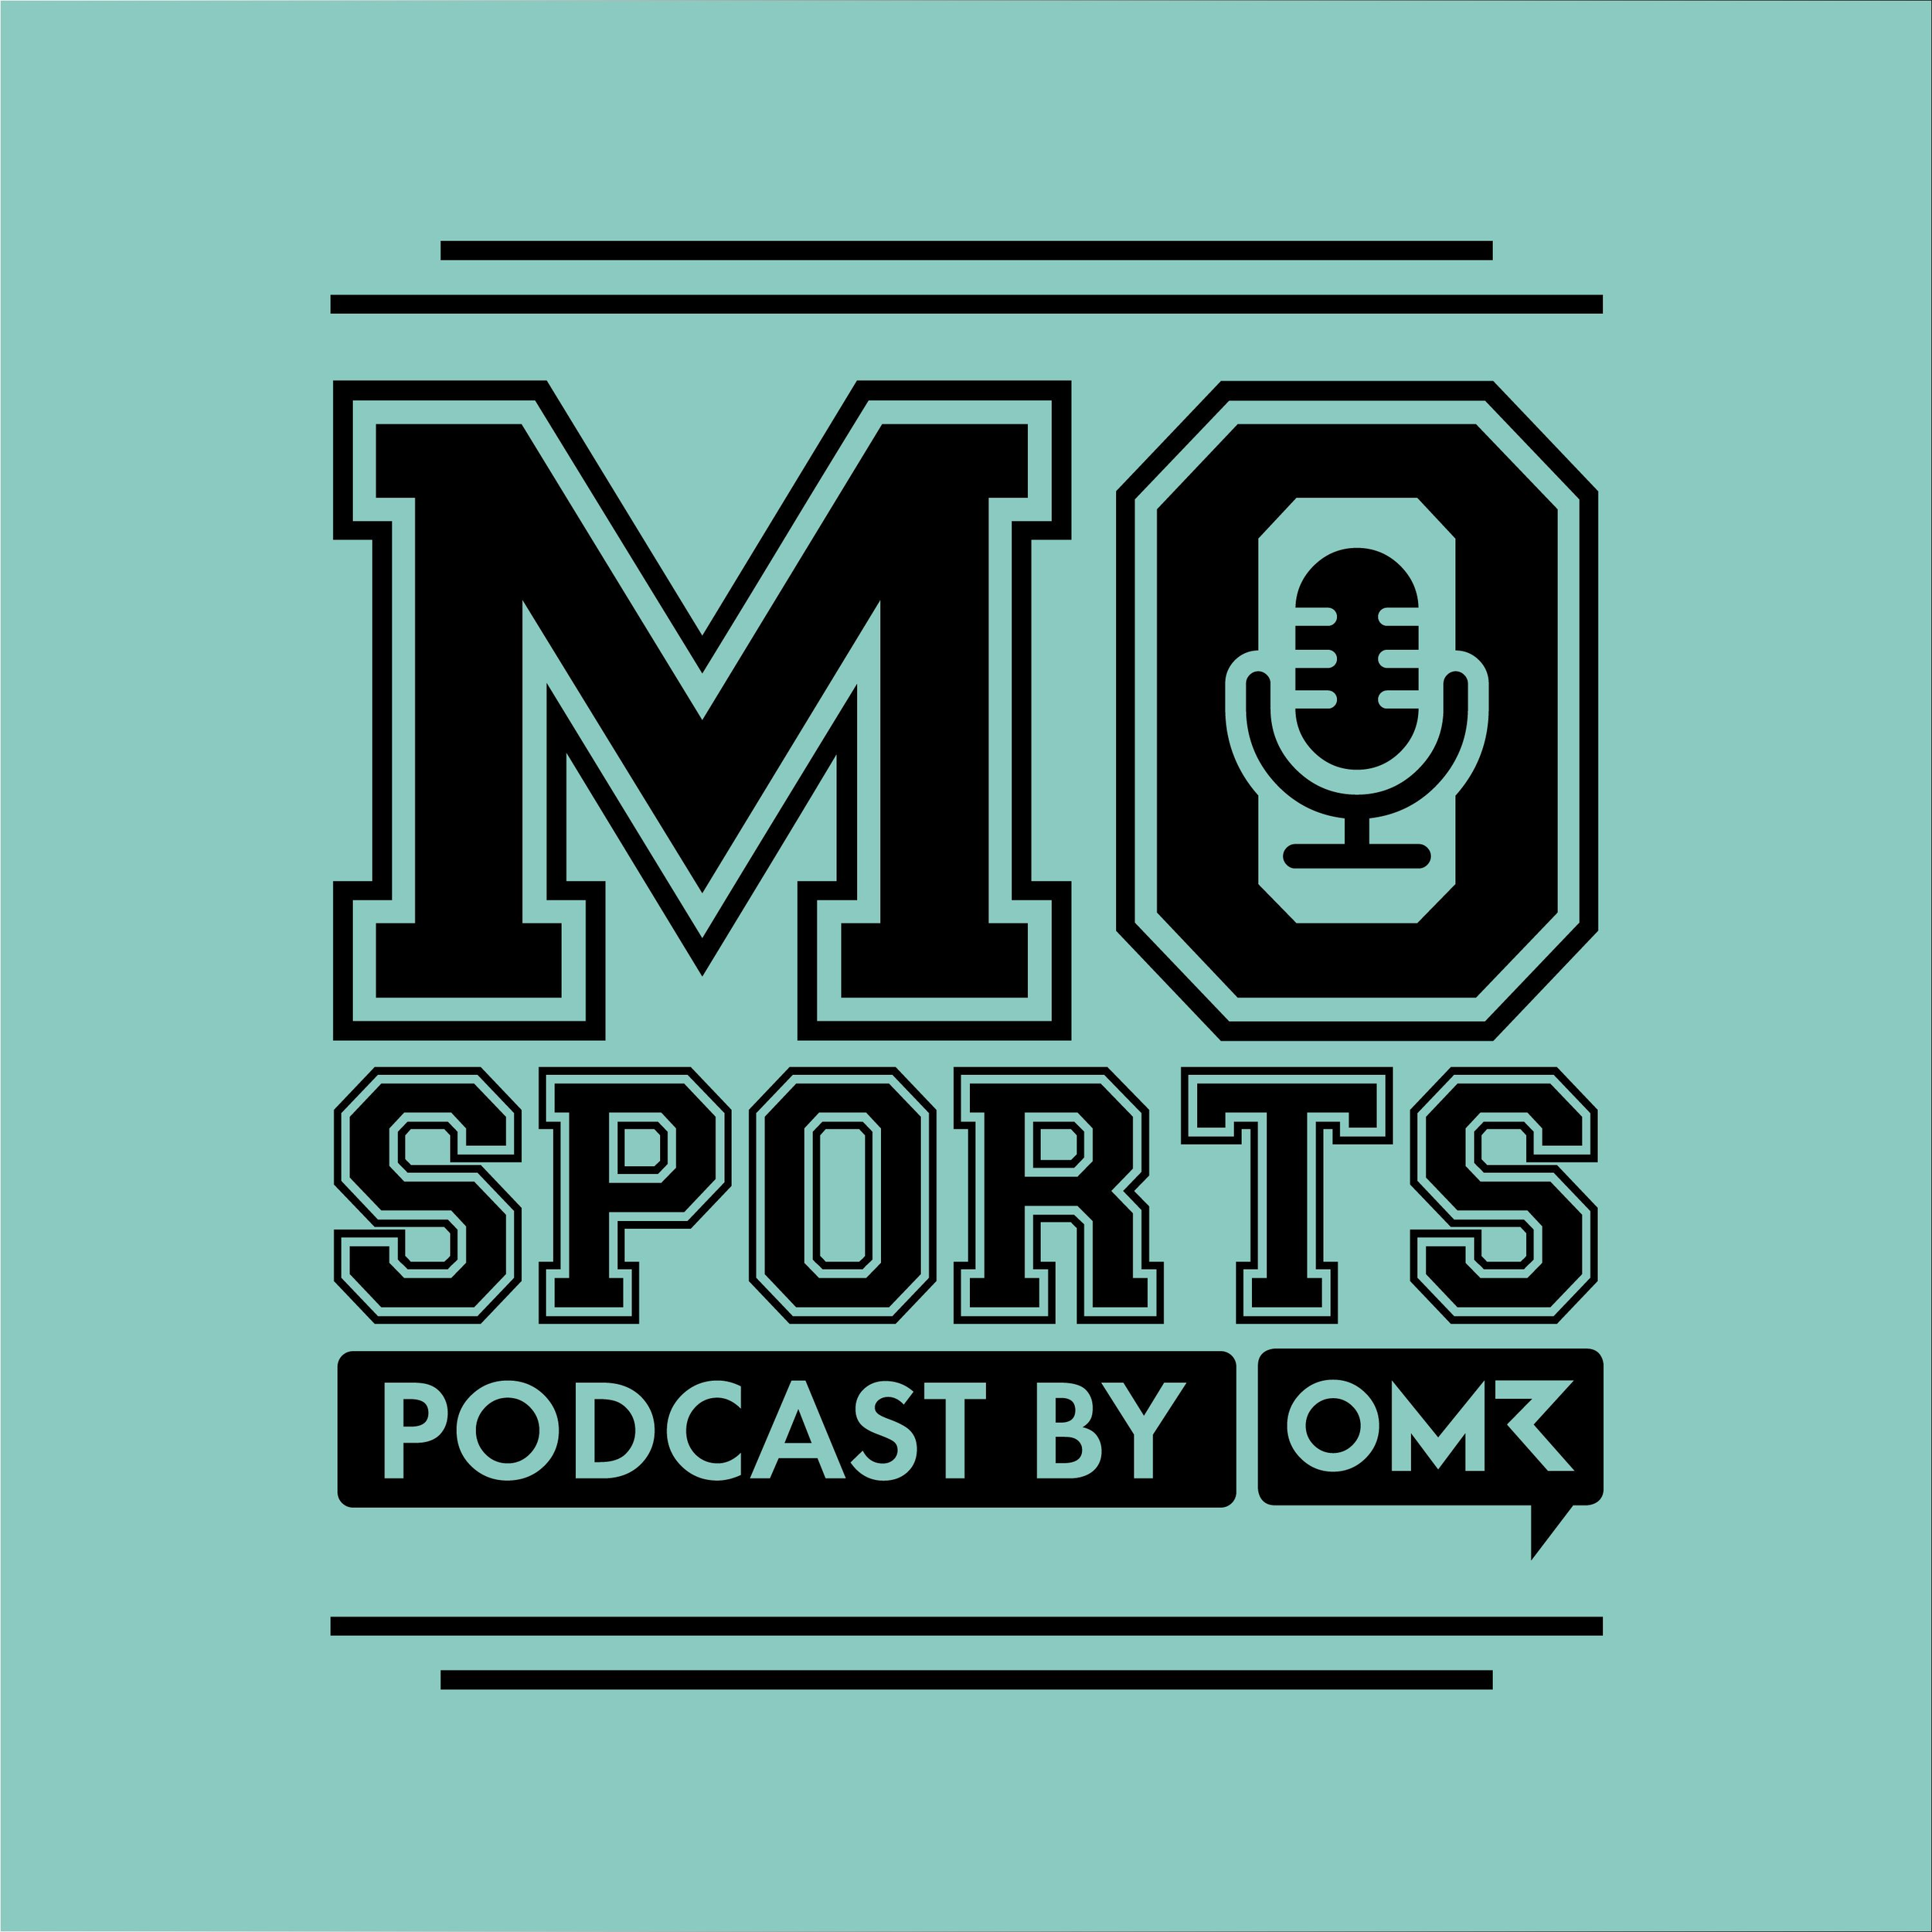 mosports-podcast-by-omr.png